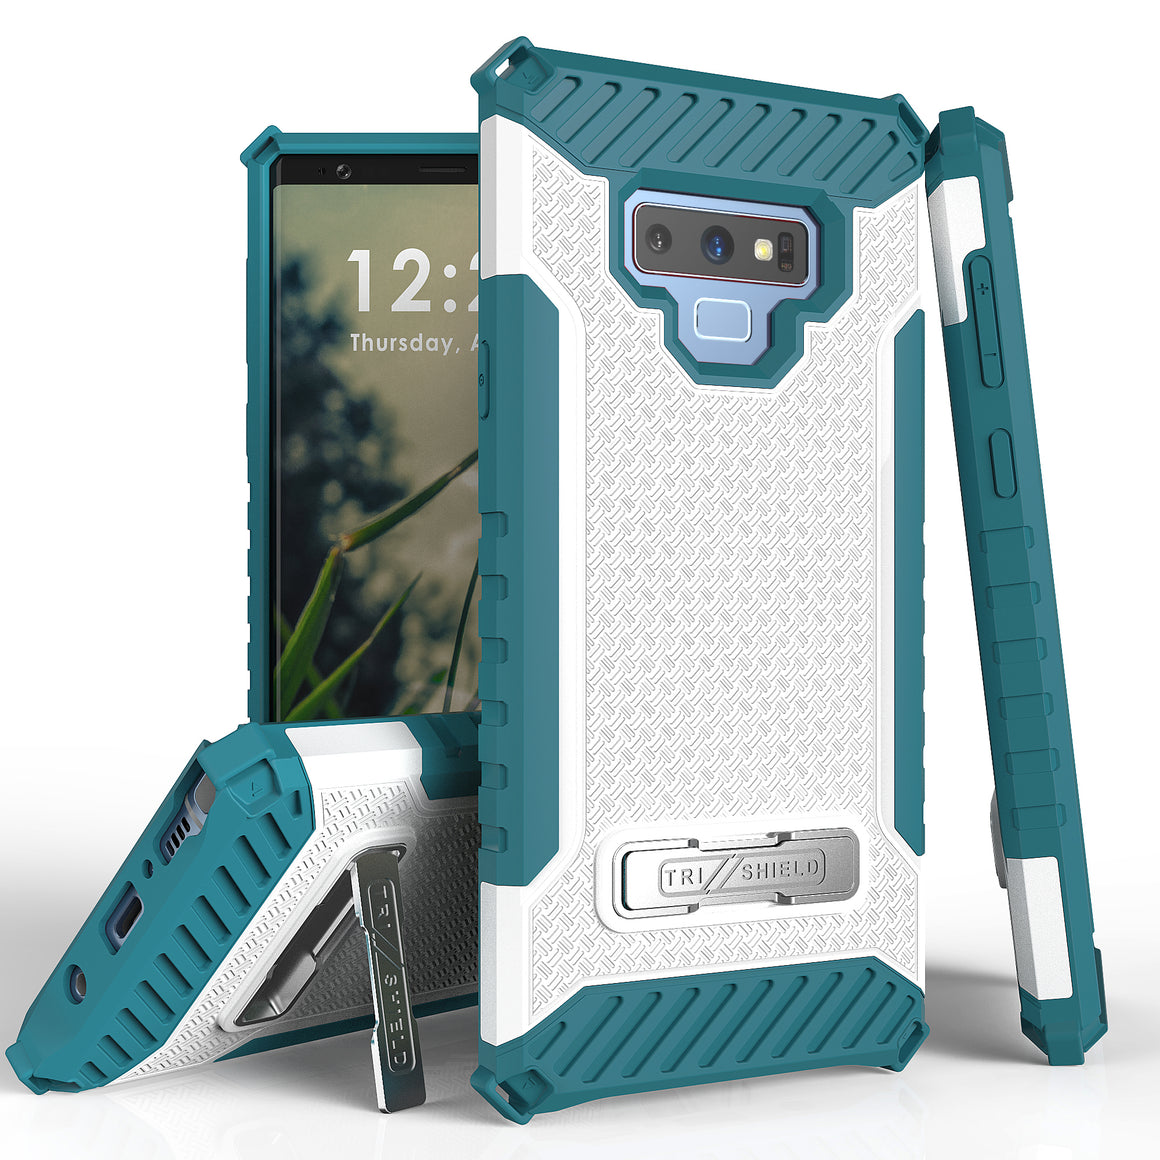 Tri Shield For Samsung Galaxy Note 9 White/Light Blue, TPU Case,Kickstand,